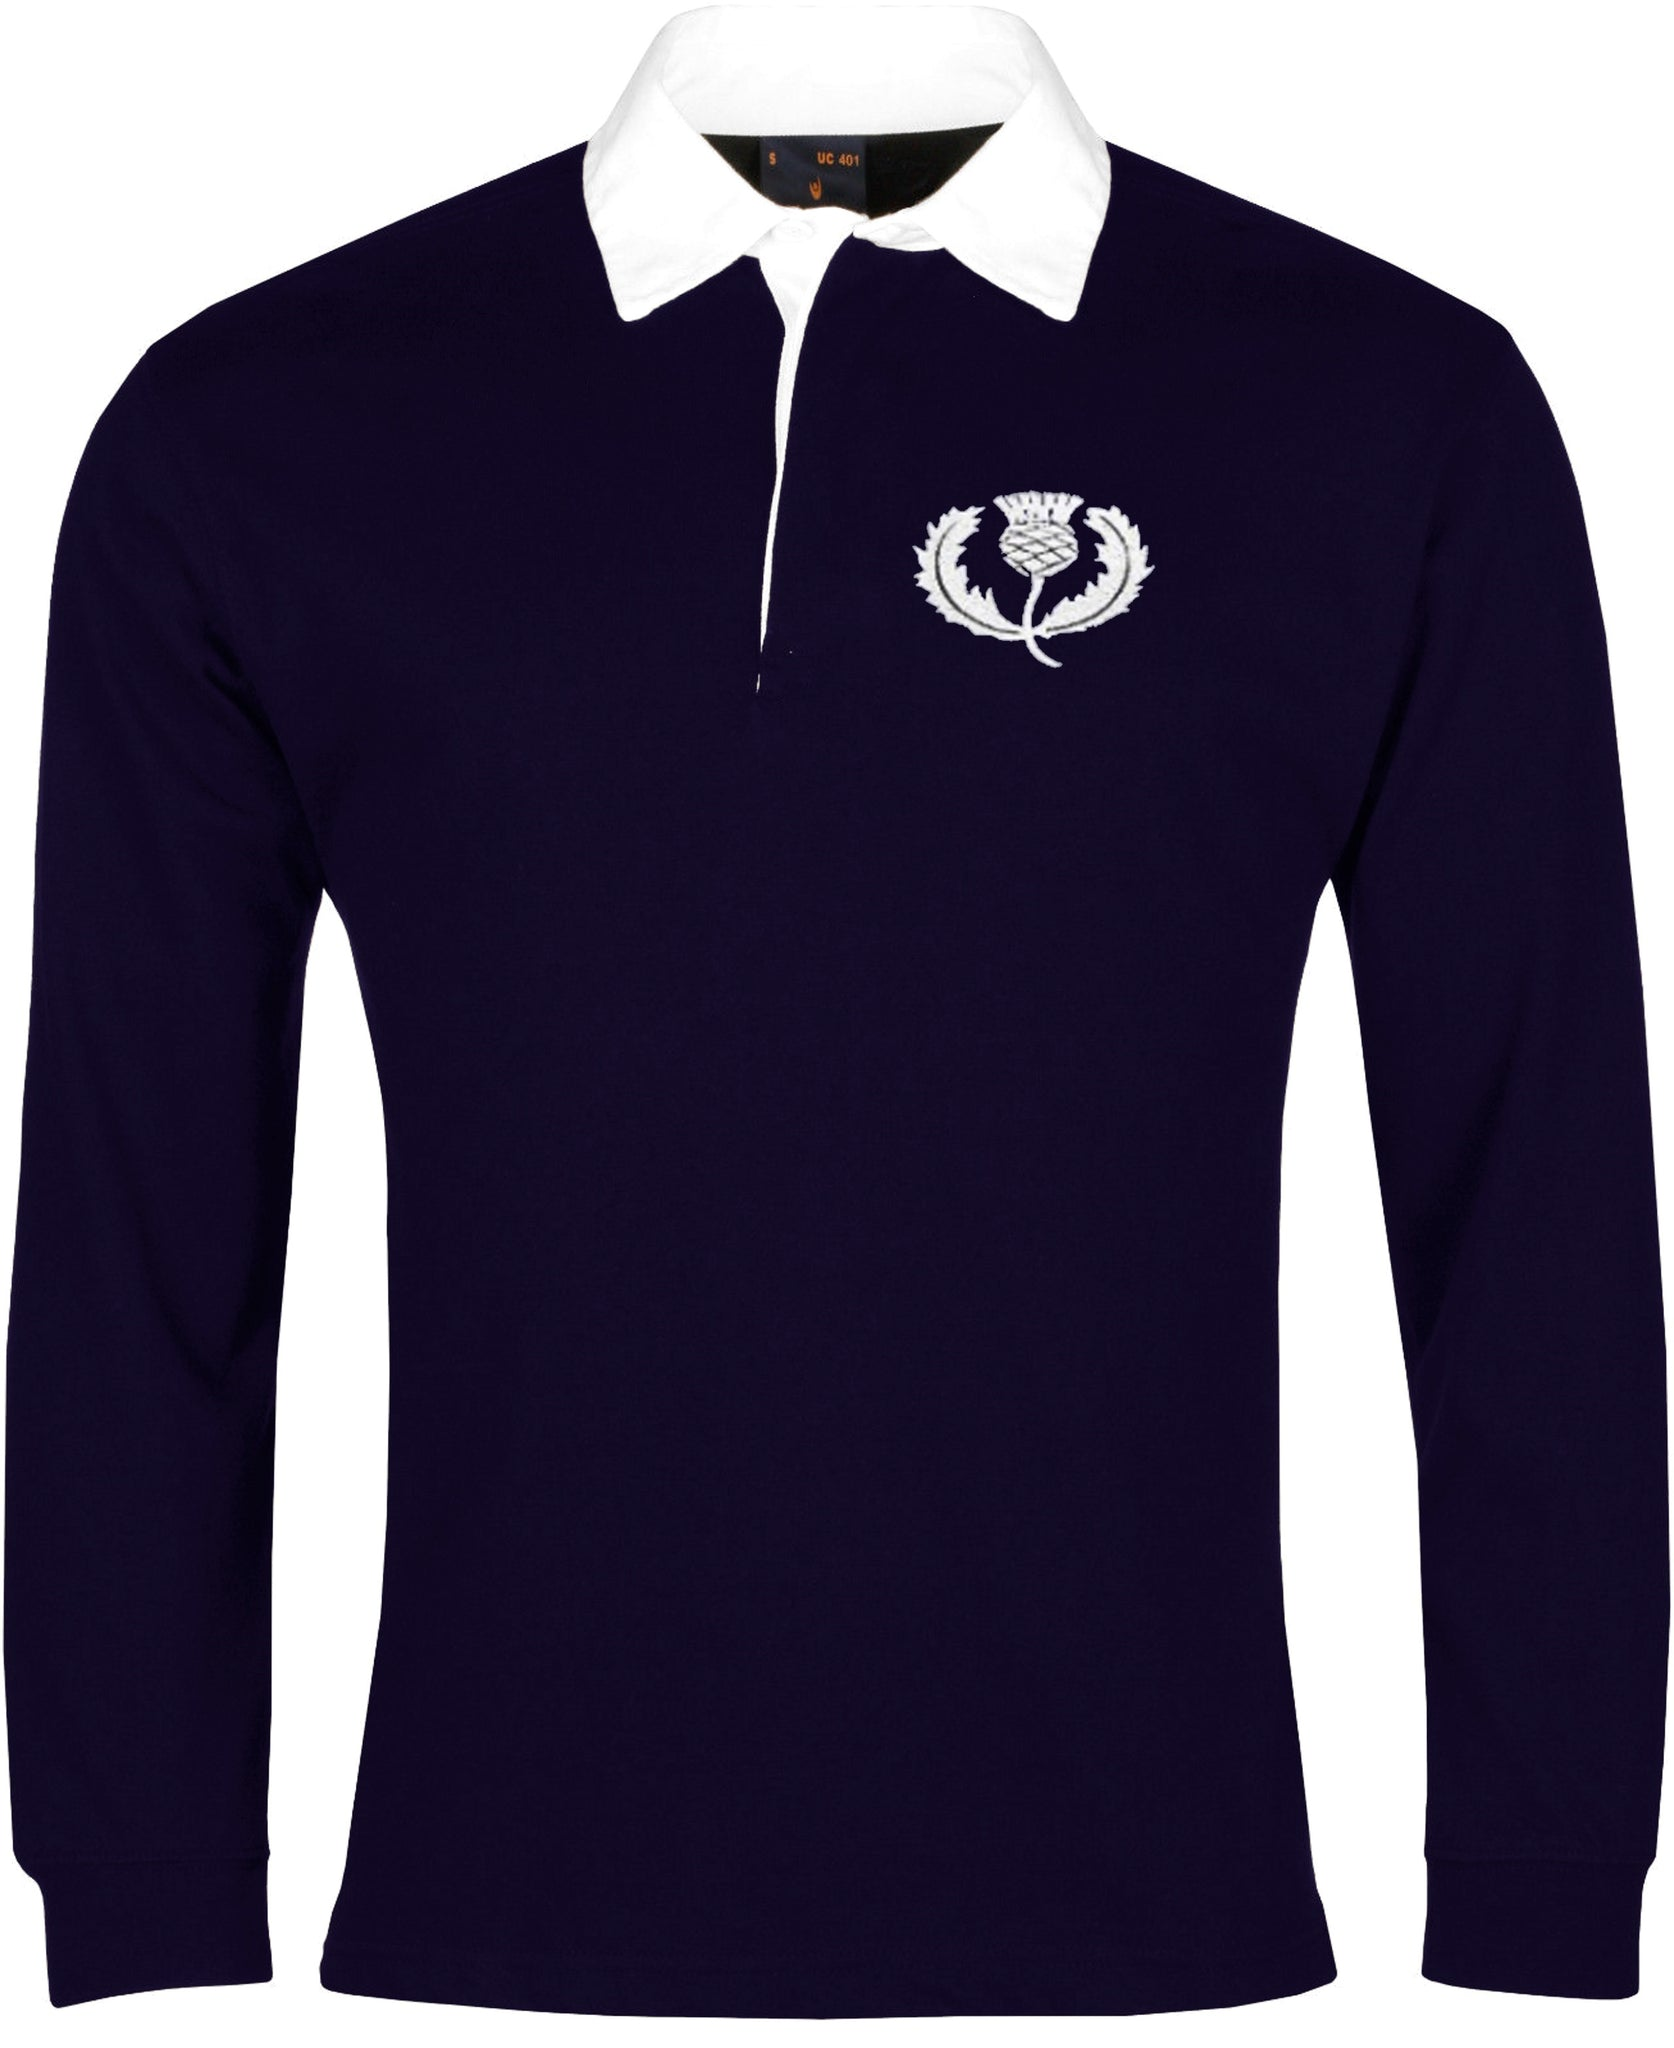 Scotland Retro Rugby Shirt Long-sleeved - Rugby Shirt